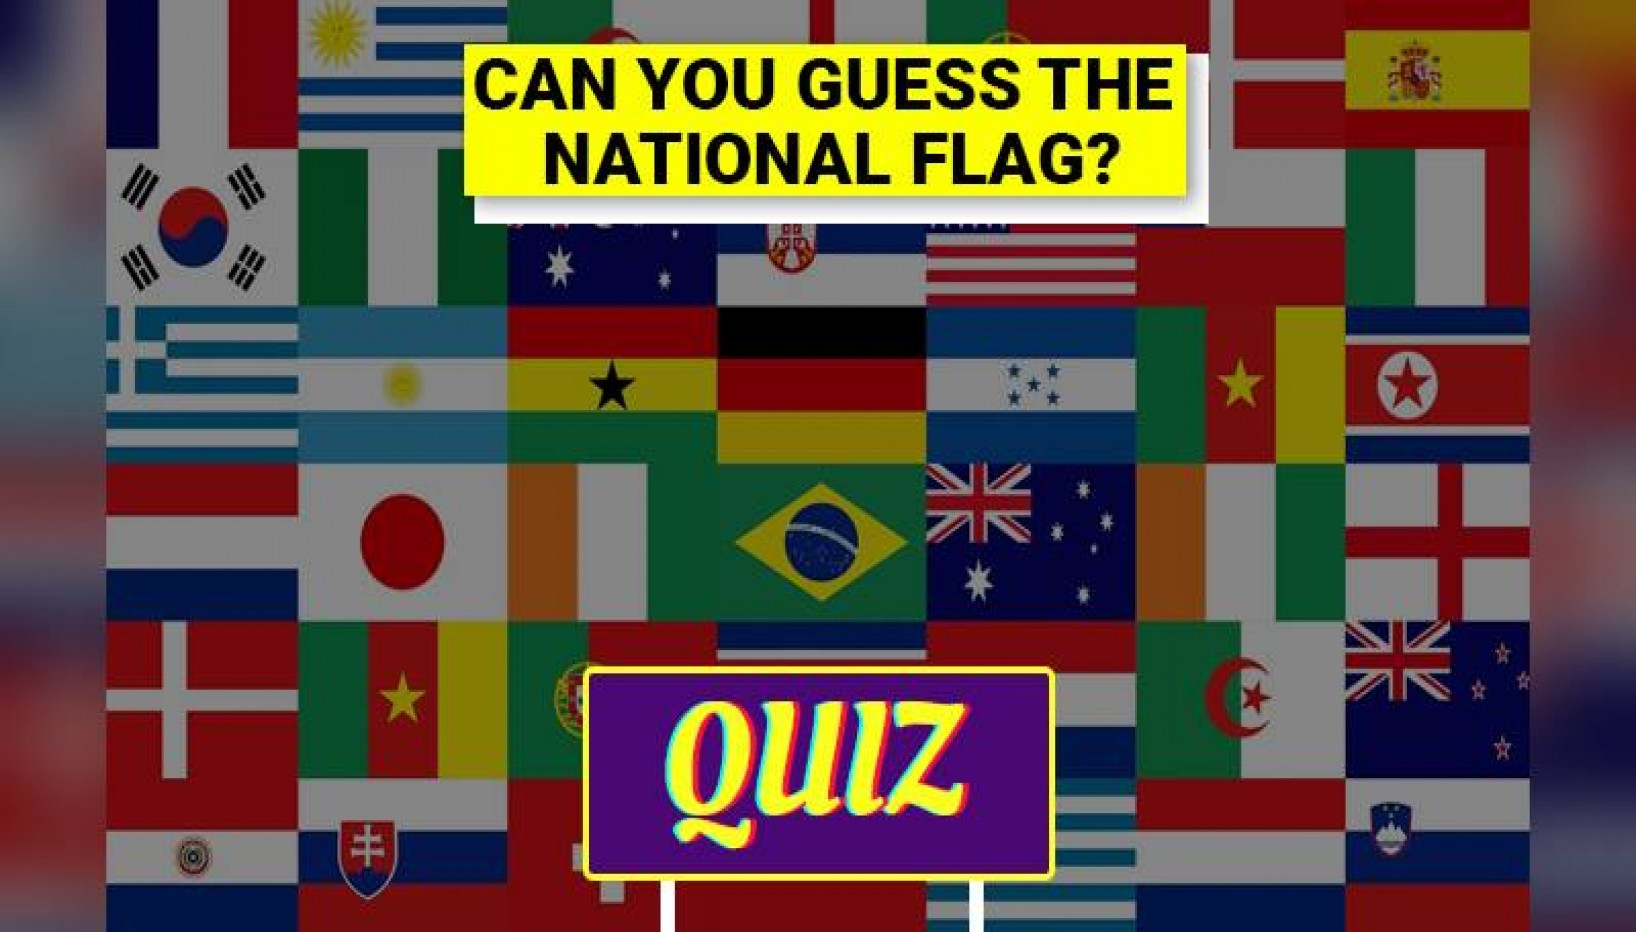 It's A Red Flag If You Score Less Than 5 On This Easy Country Flag Quiz